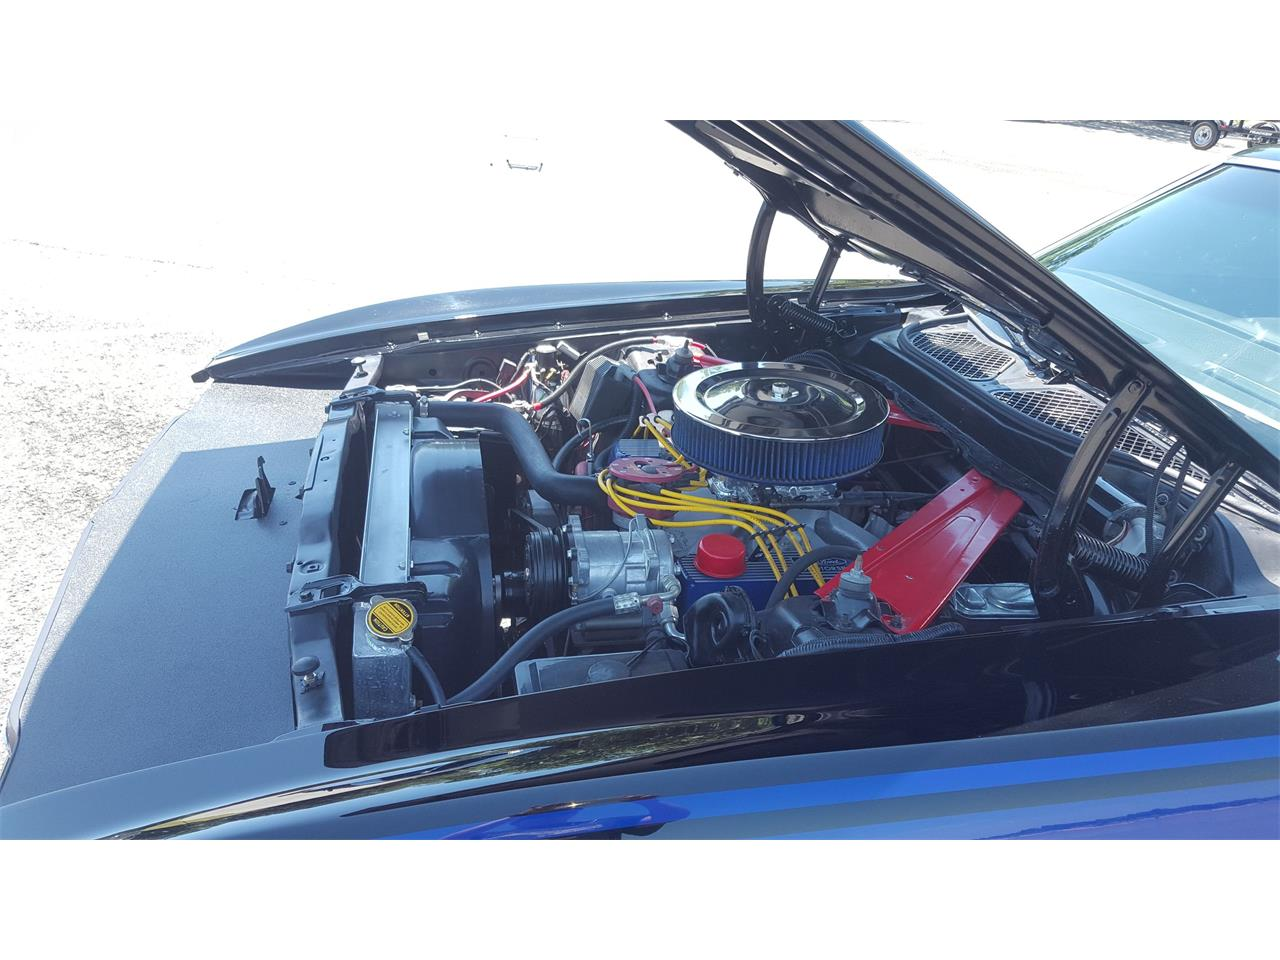 Large Picture of 1973 Ford Mustang Mach 1 located in Texas Offered by a Private Seller - LBYV